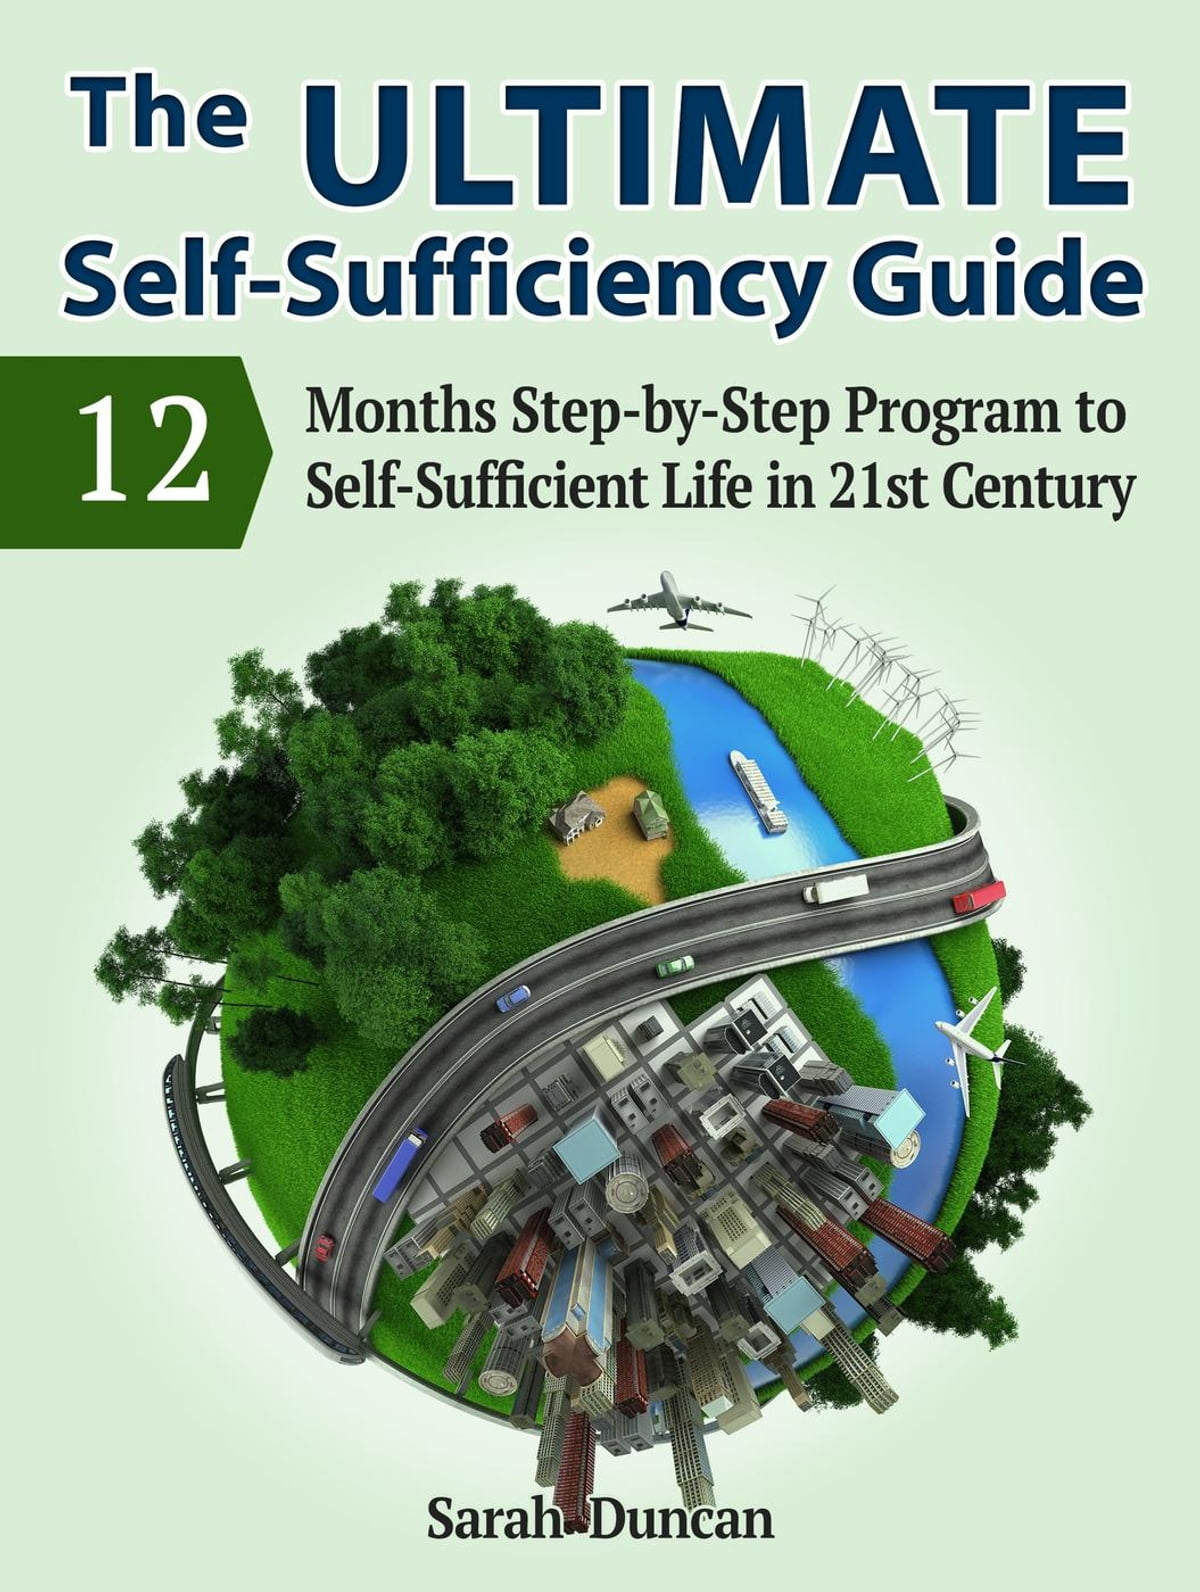 The Ultimate Self-Sufficiency Guide: 12 Months Step-by-Step Program to Self-Sufficient Life in 21st Century eBook by Sarah Duncan - 9781386653042 ...